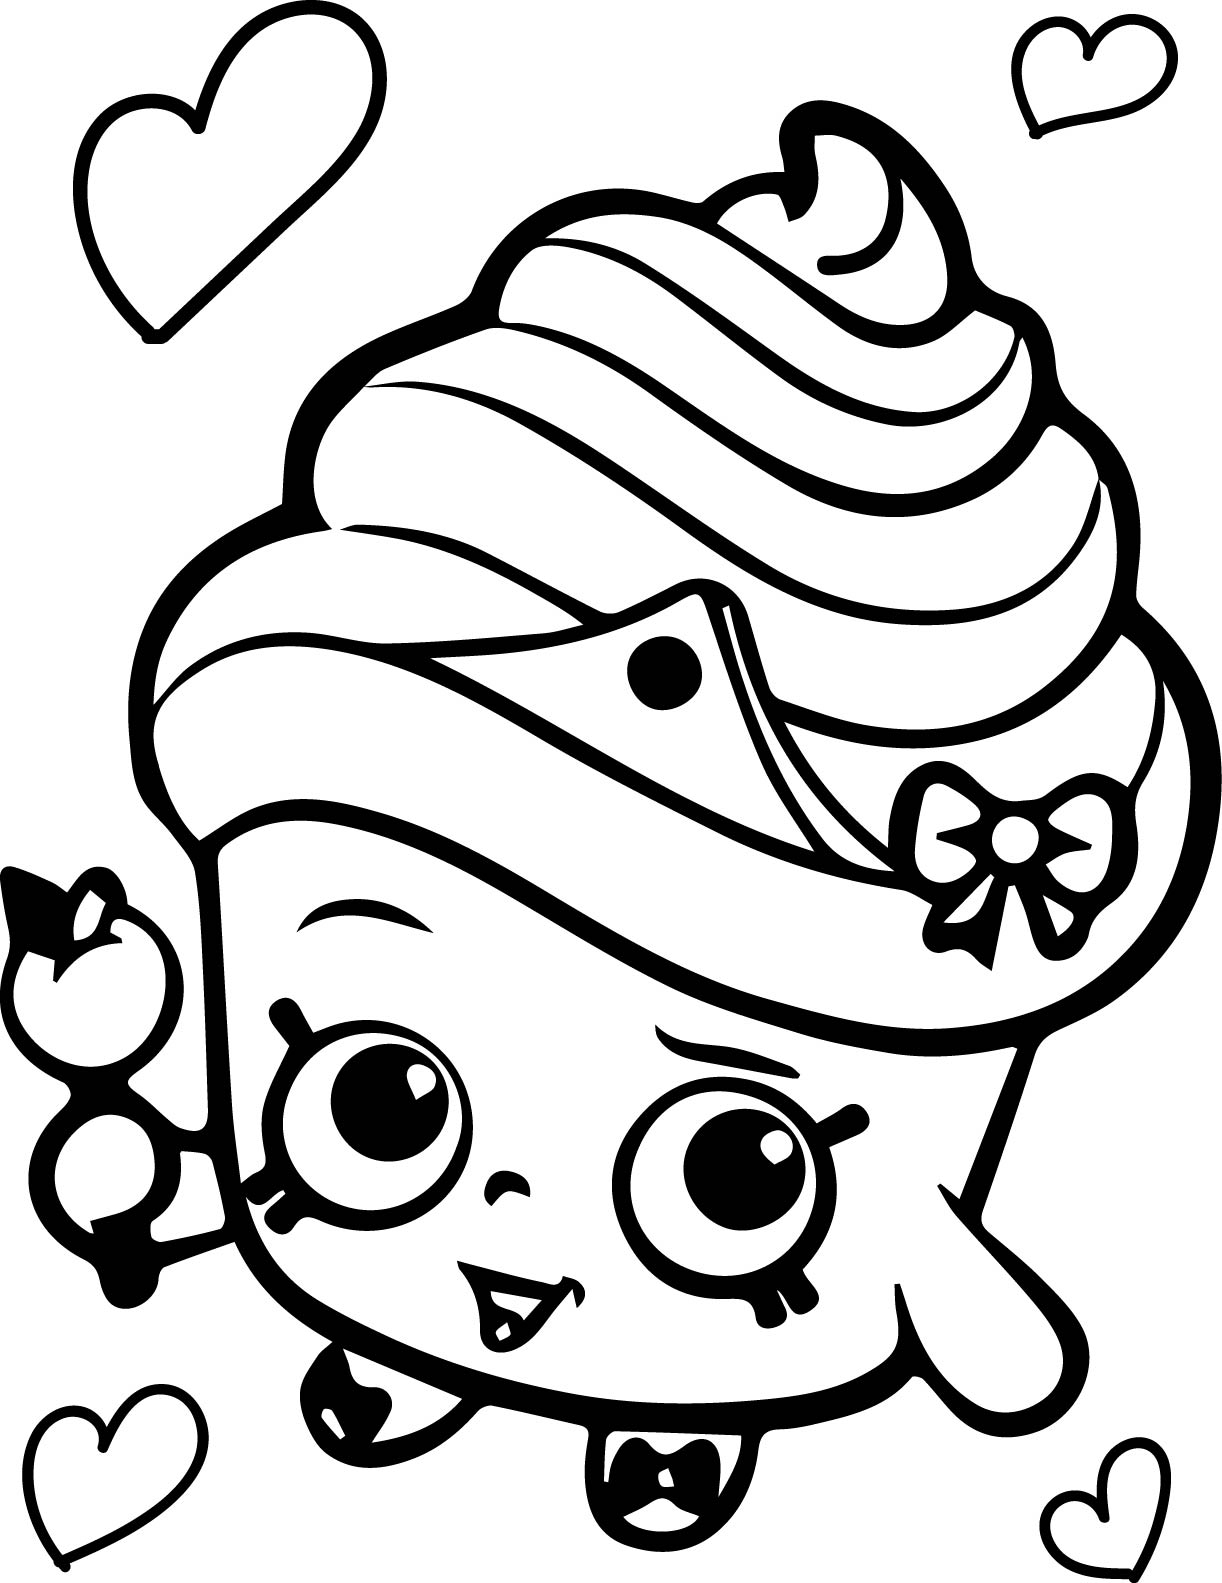 cupcake coloring page printable cupcake color page cupcake coloring